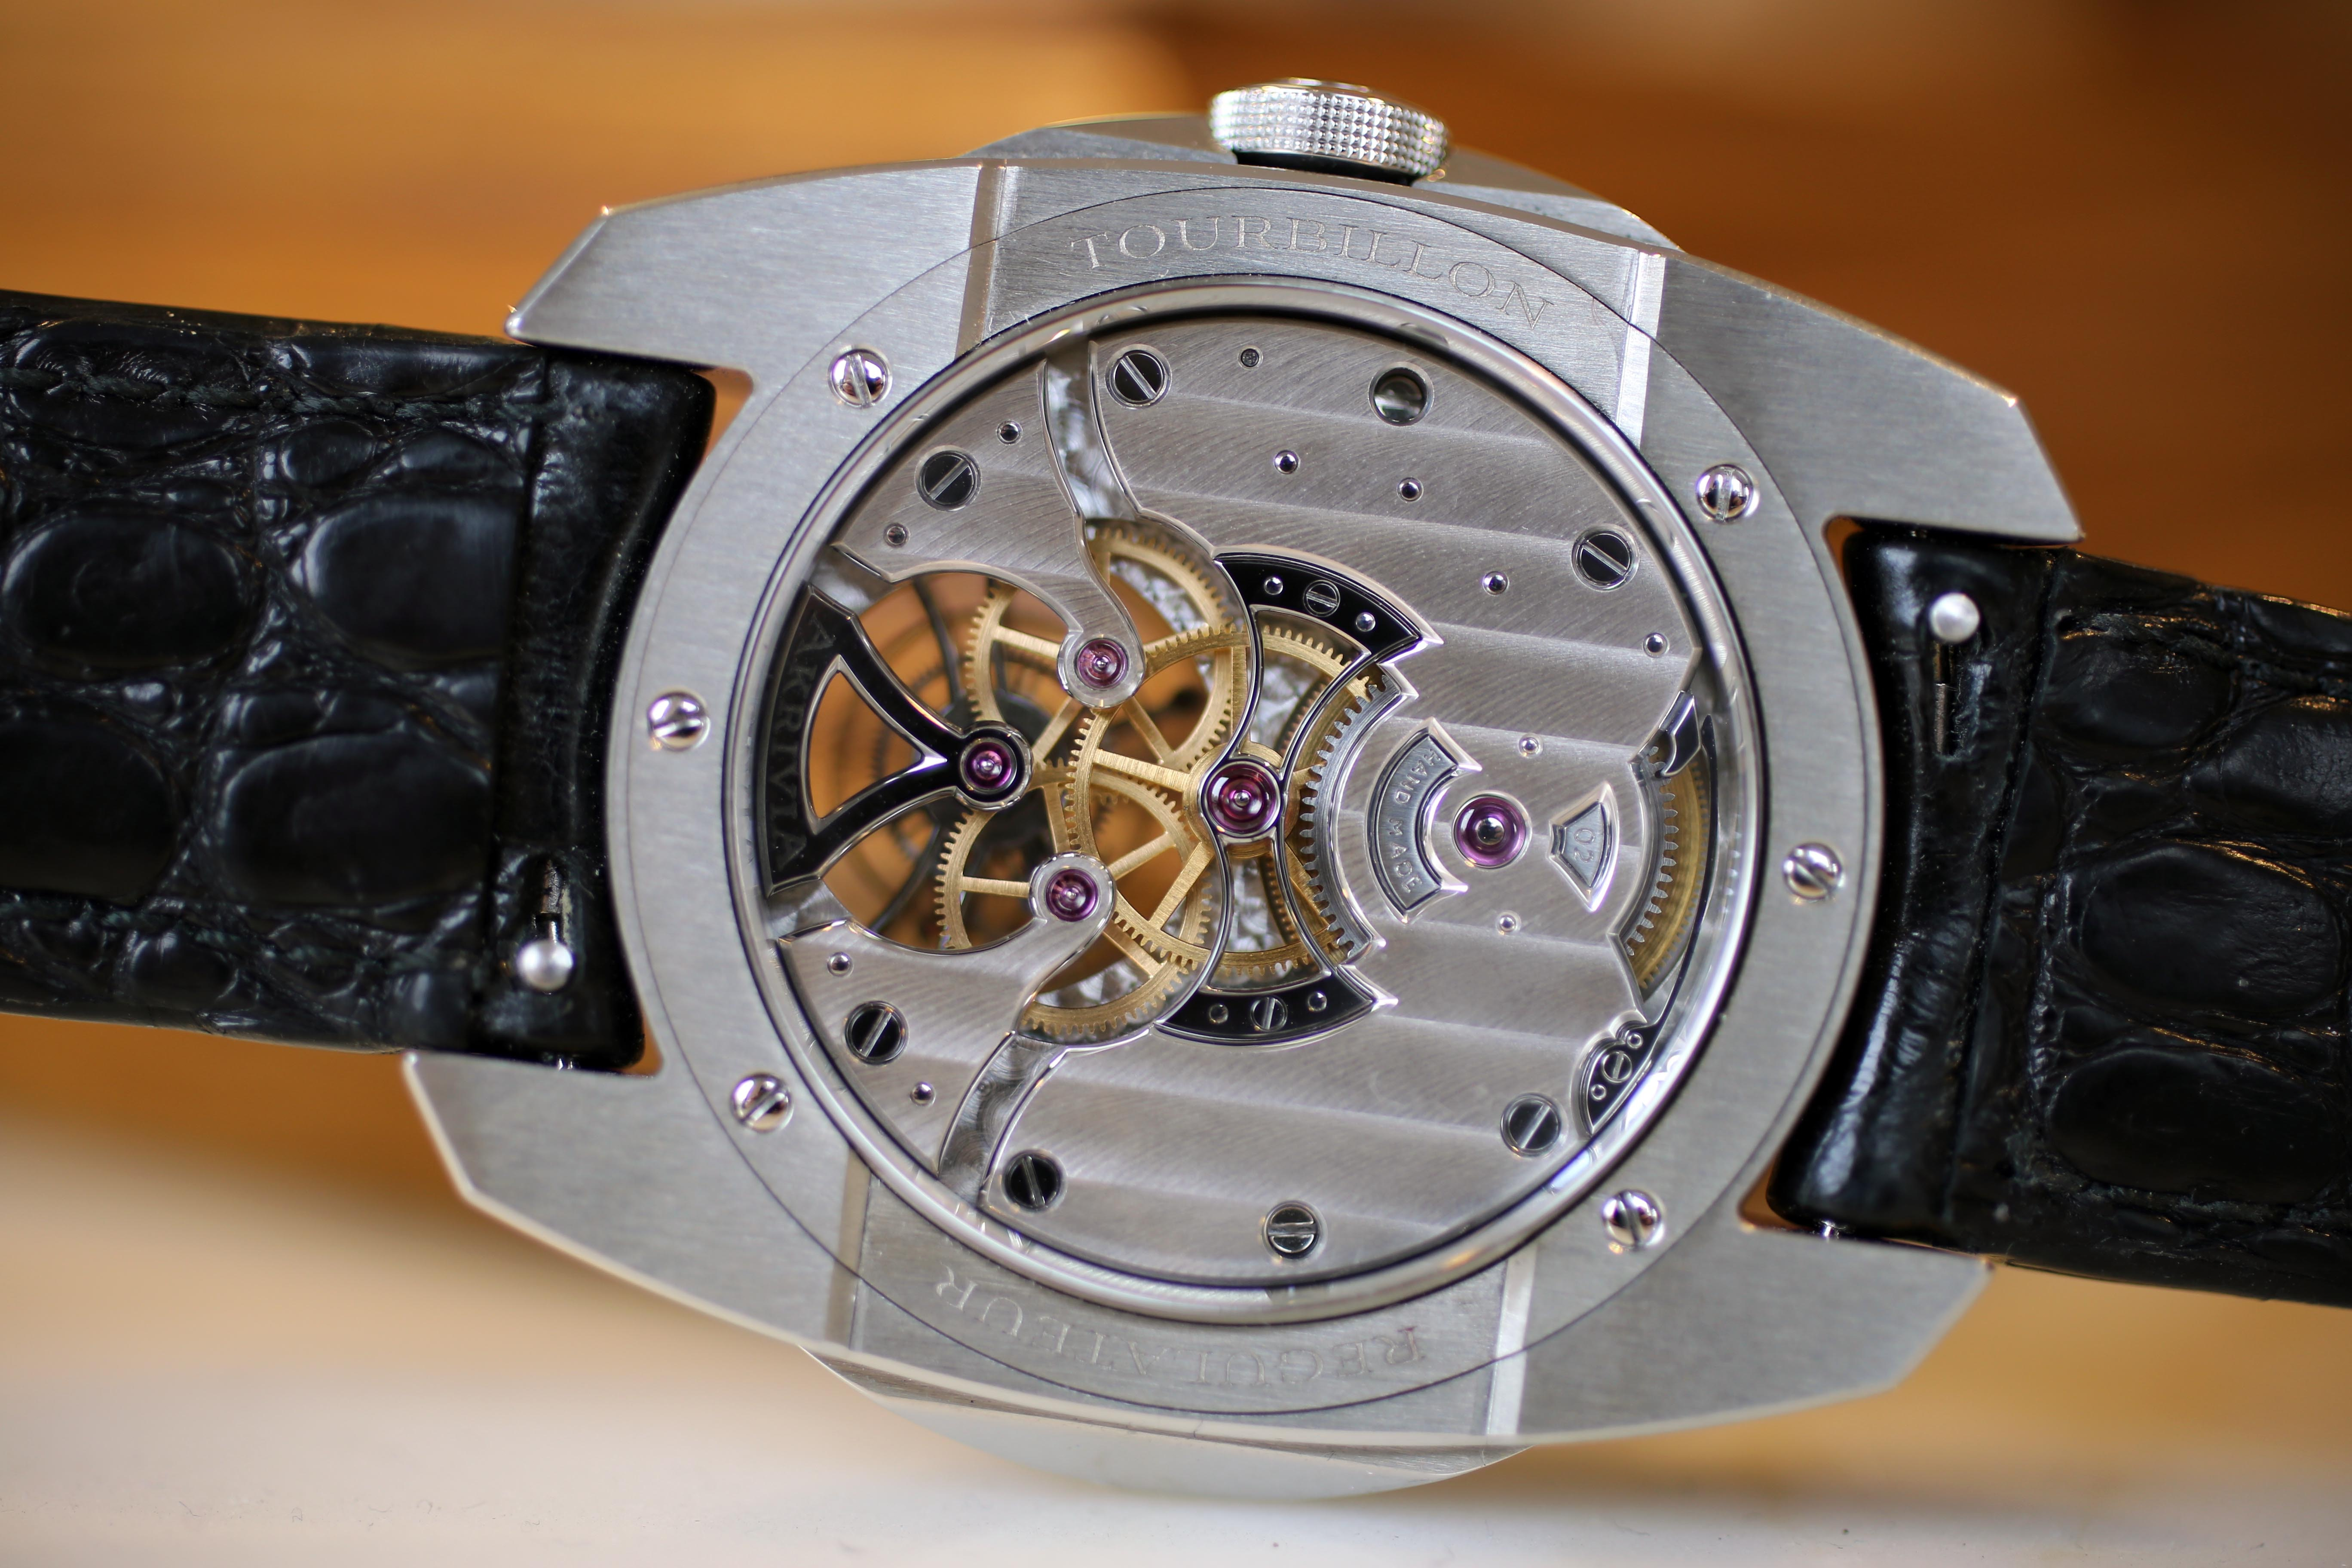 Hand-wound tourbillon movement with 100 hour power reserve. Remember Rexhep Rexhepi, Geneva's Next Big Thing? He's Still Busy Making Watches, And His Business Is Growing Remember Rexhep Rexhepi, Geneva's Next Big Thing? He's Still Busy Making Watches, And His Business Is Growing IMG 2525